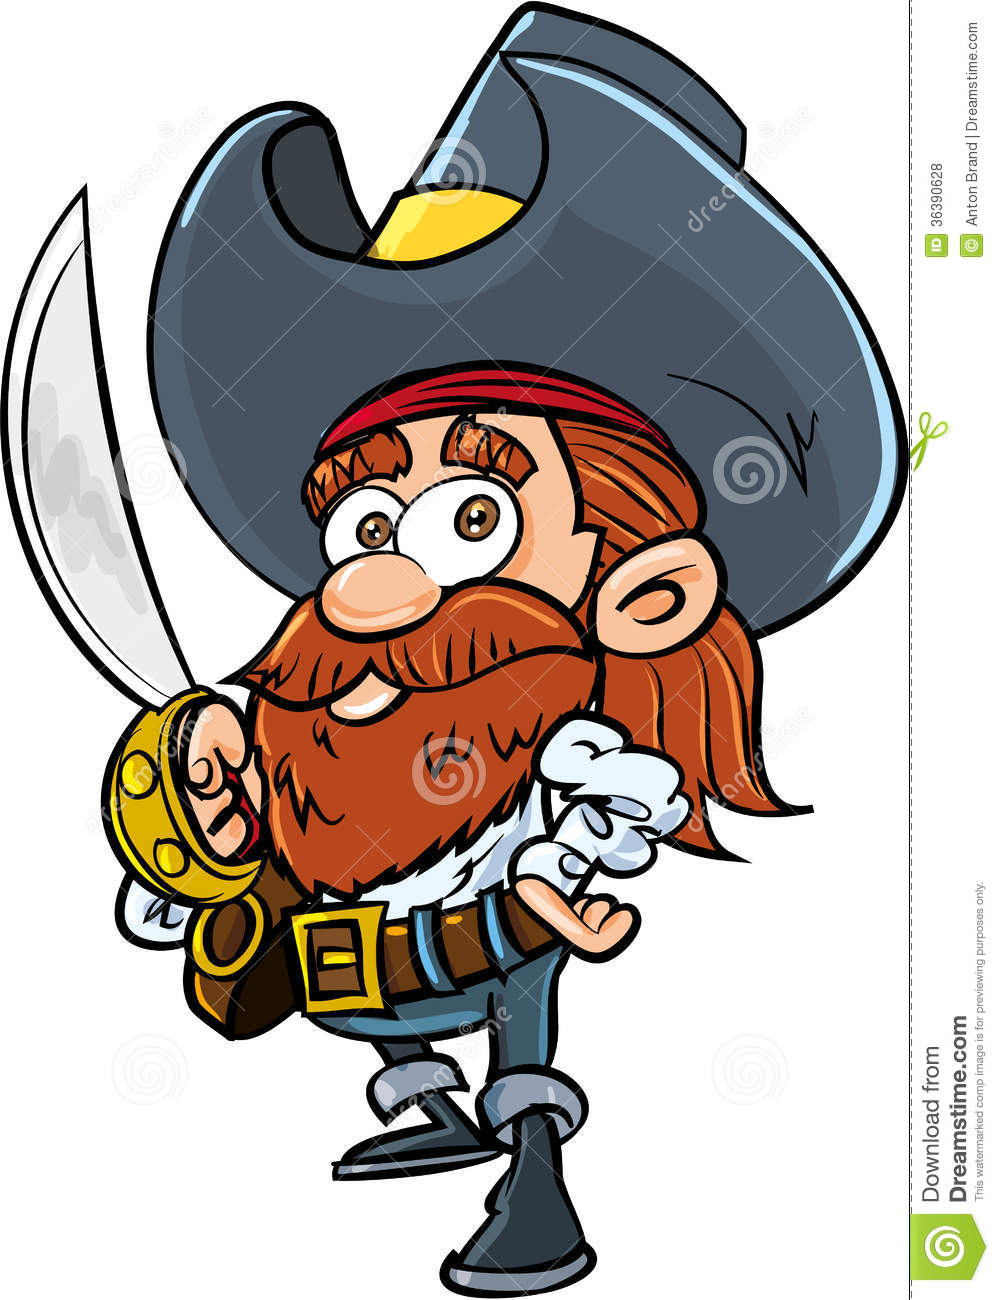 Cute Cartoon Pirate With A Cutlass Royalty Free Stock ...